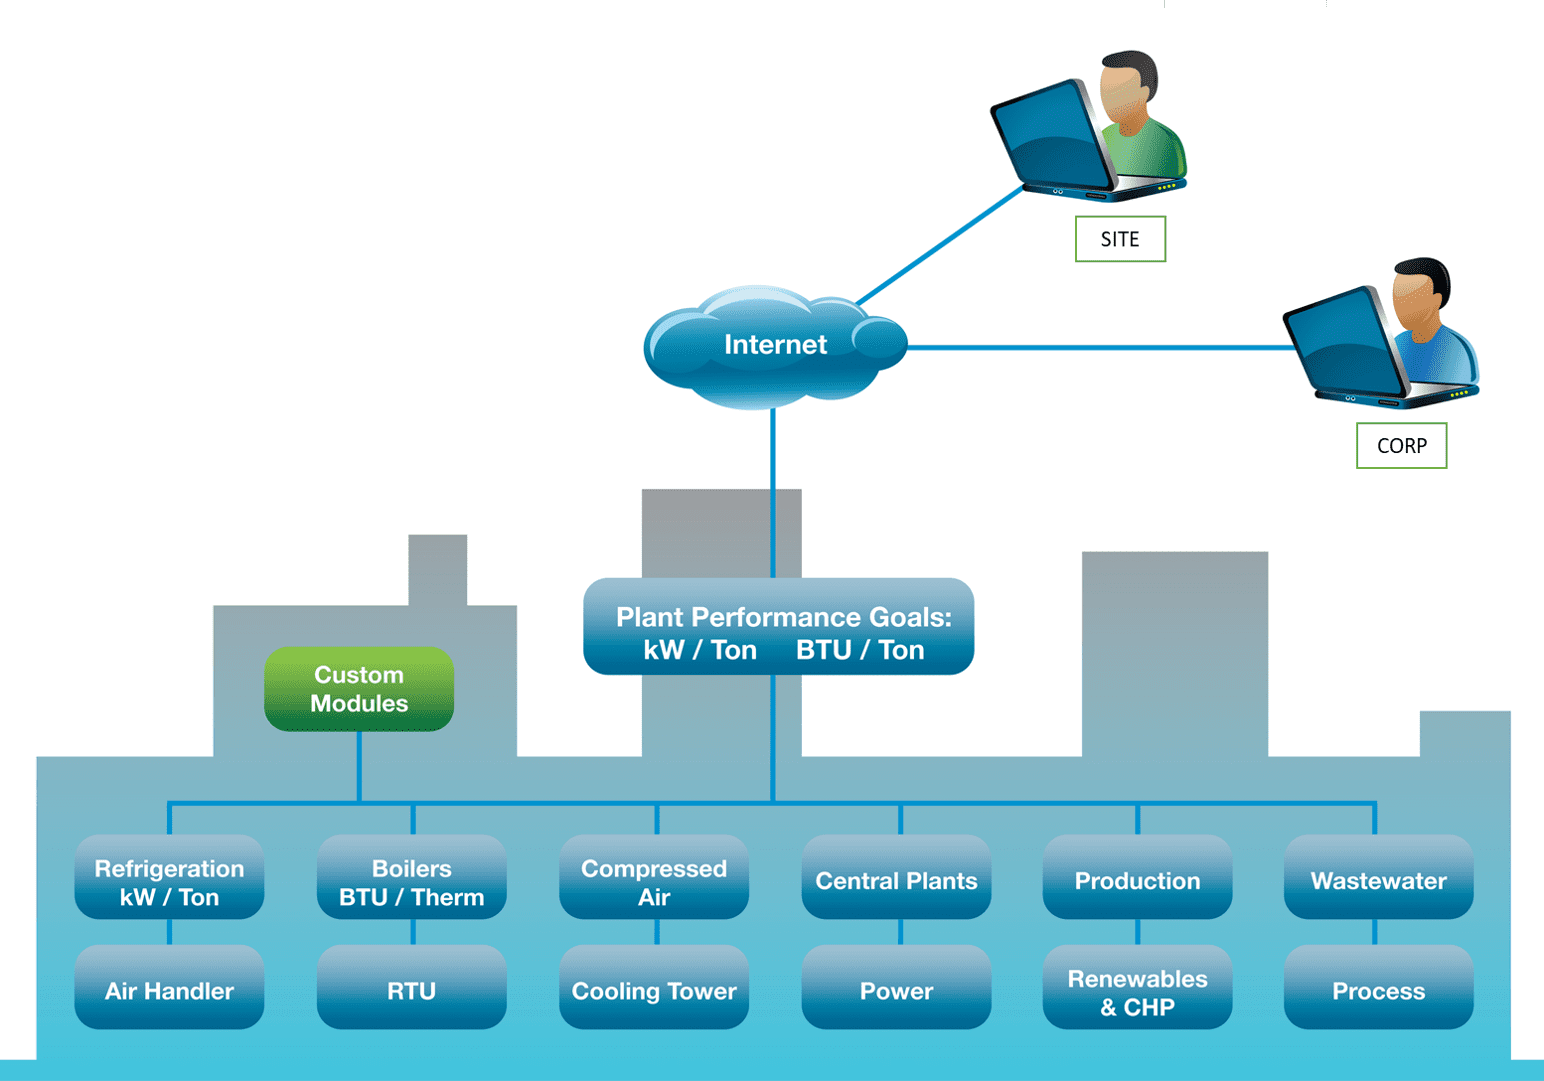 Basic System KPI Architecture for a compressed air system